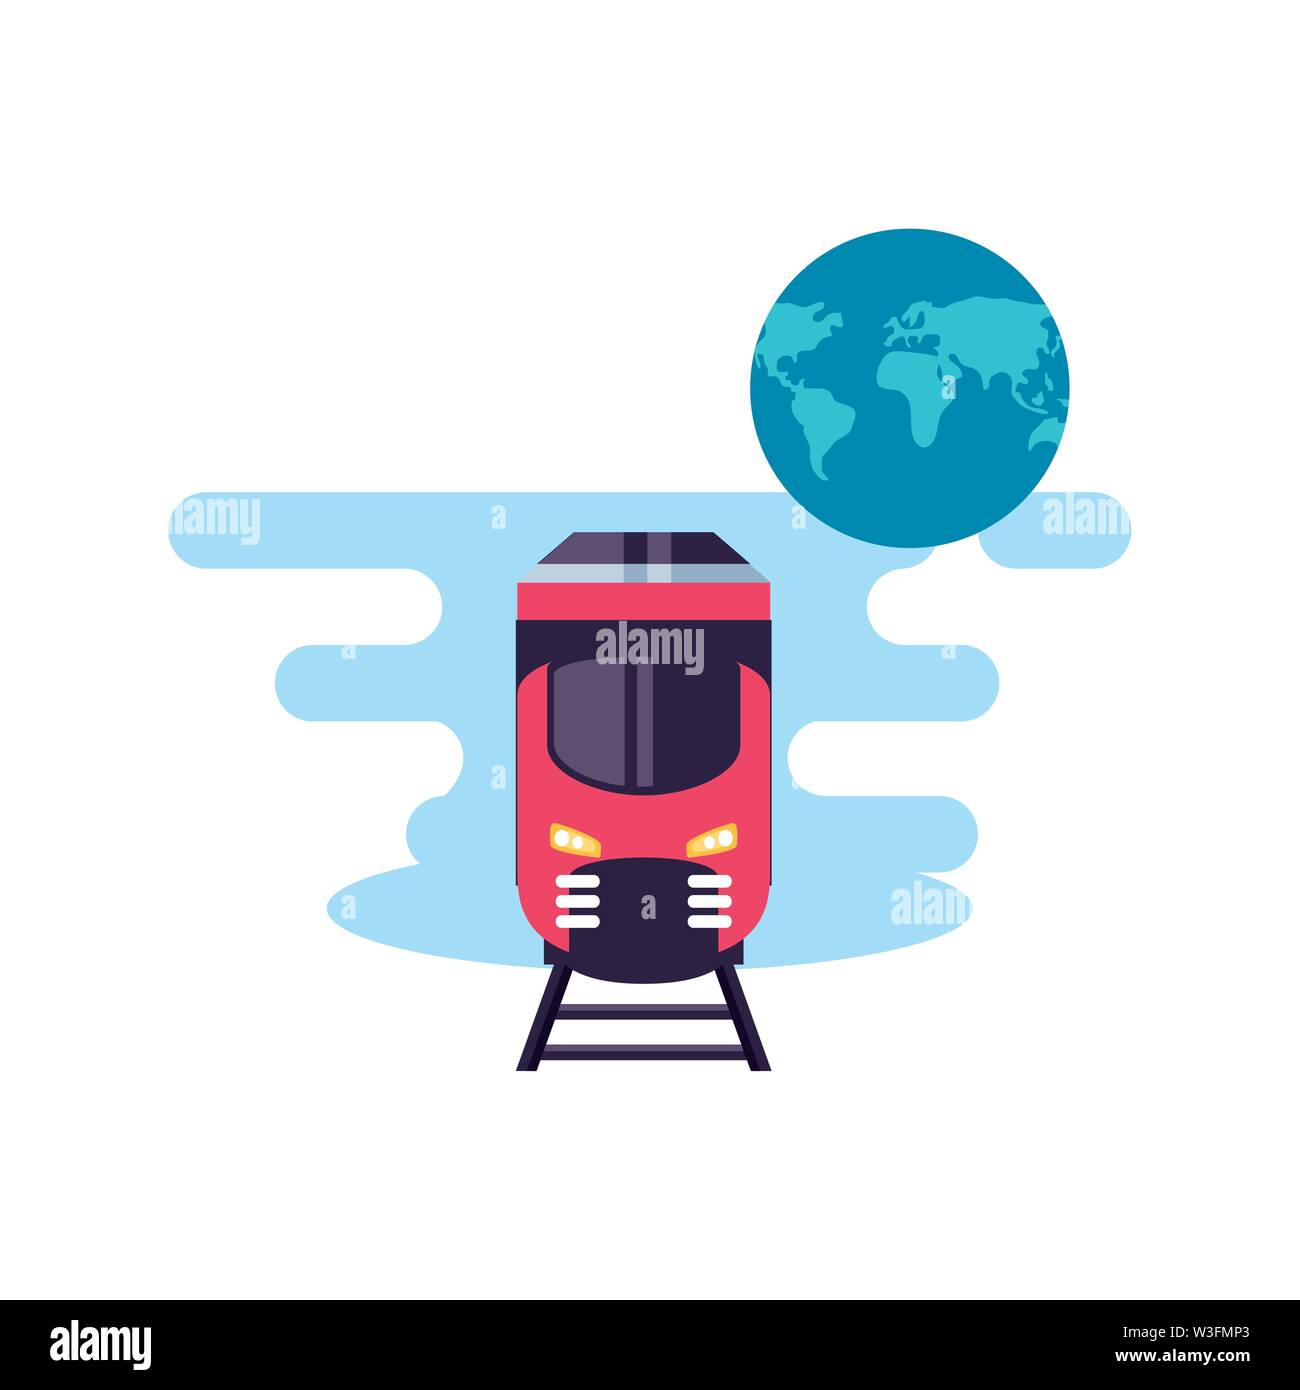 train travel vehicle with world planet vector illustration design - Stock Image